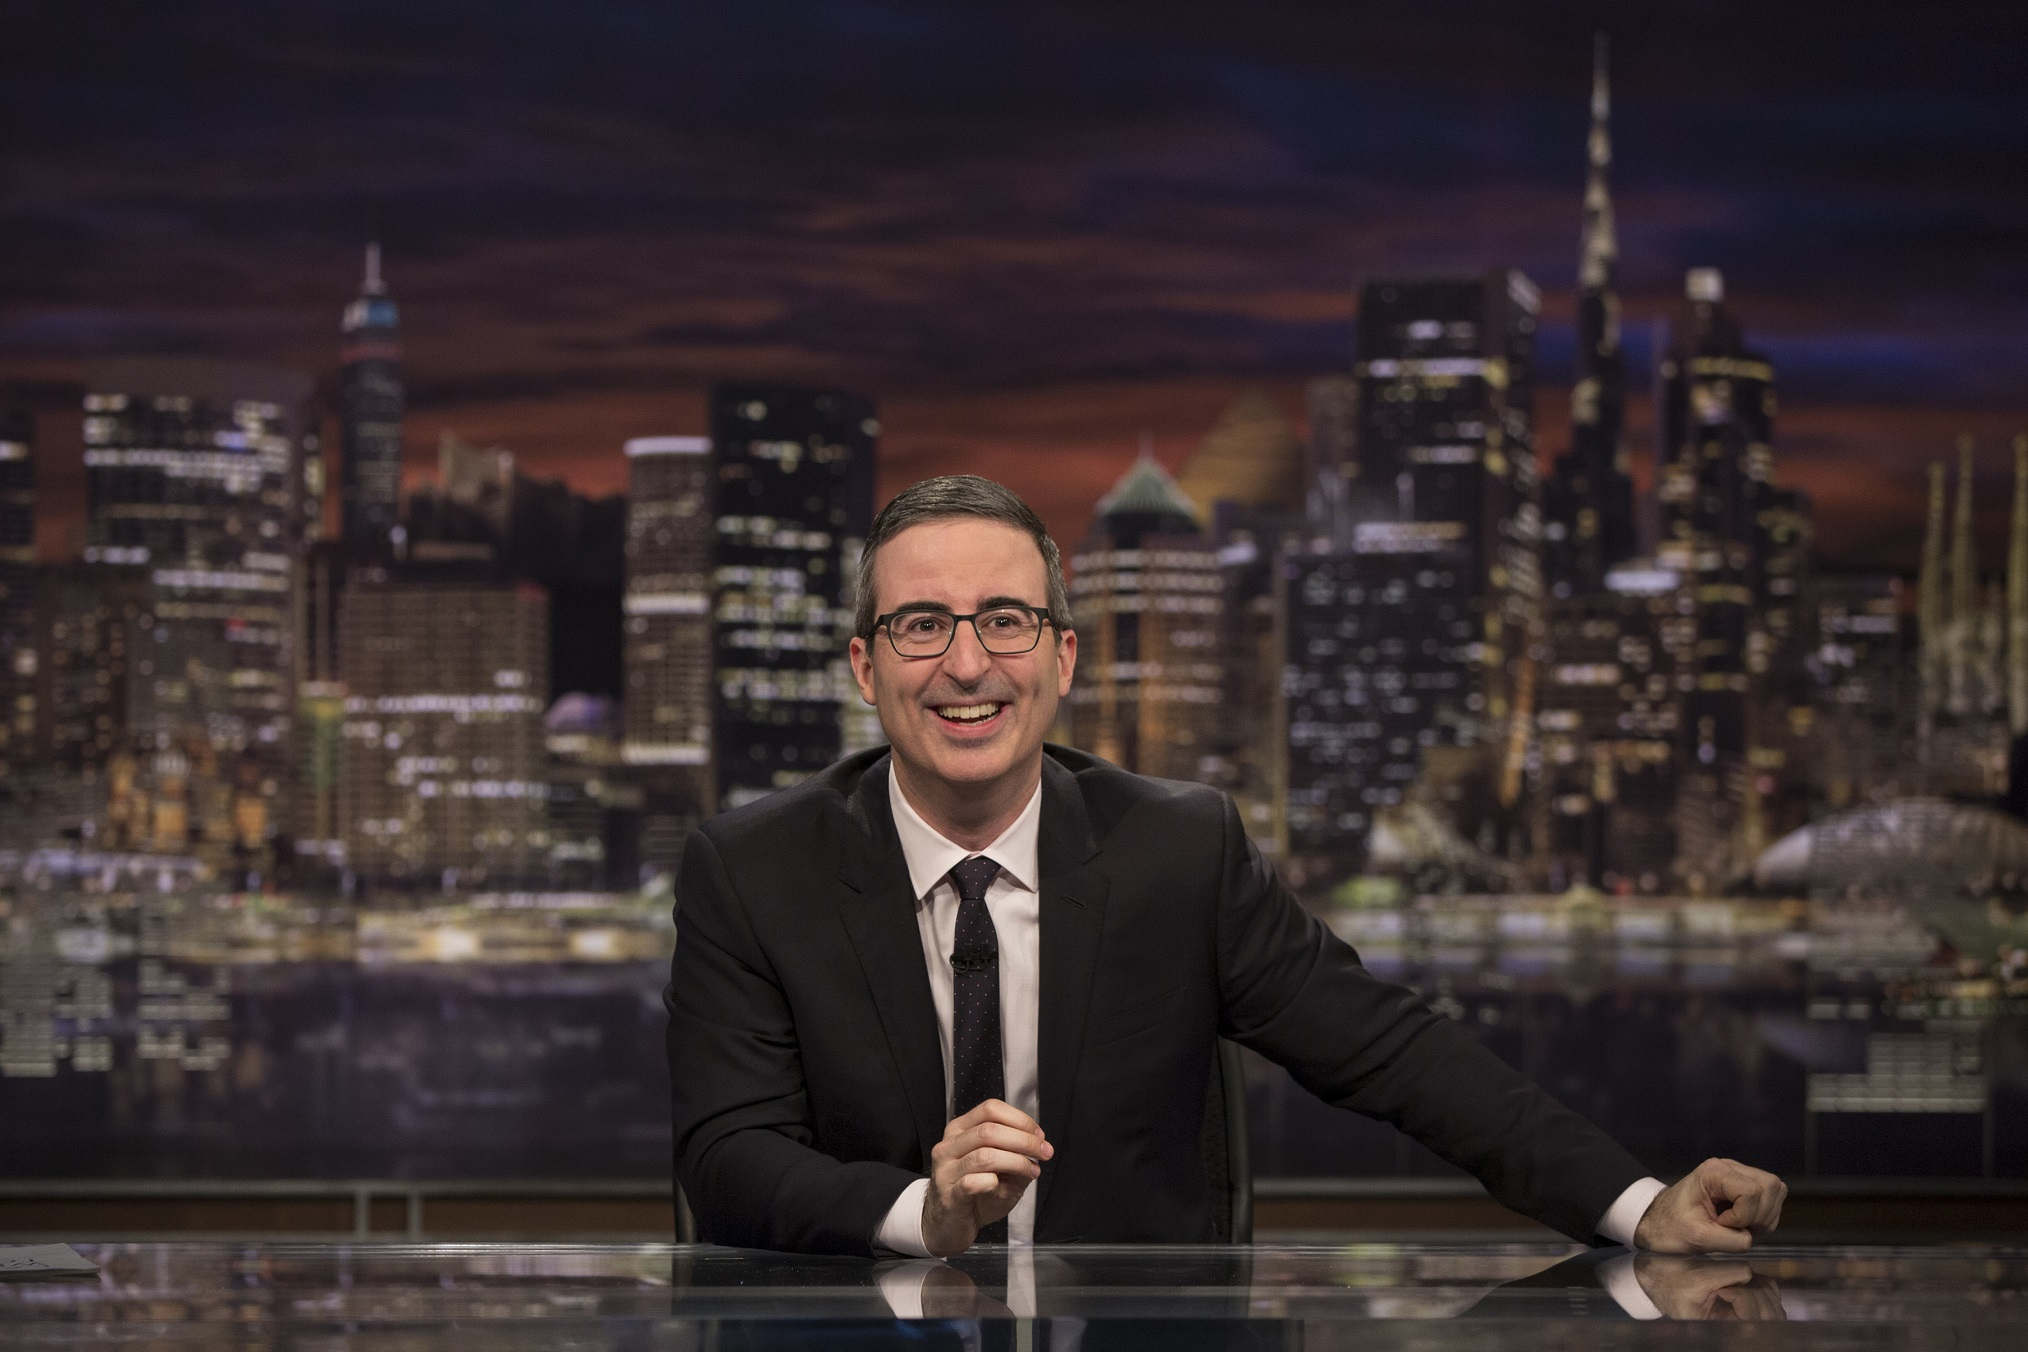 Last Week Tonight image that you can see on Binge